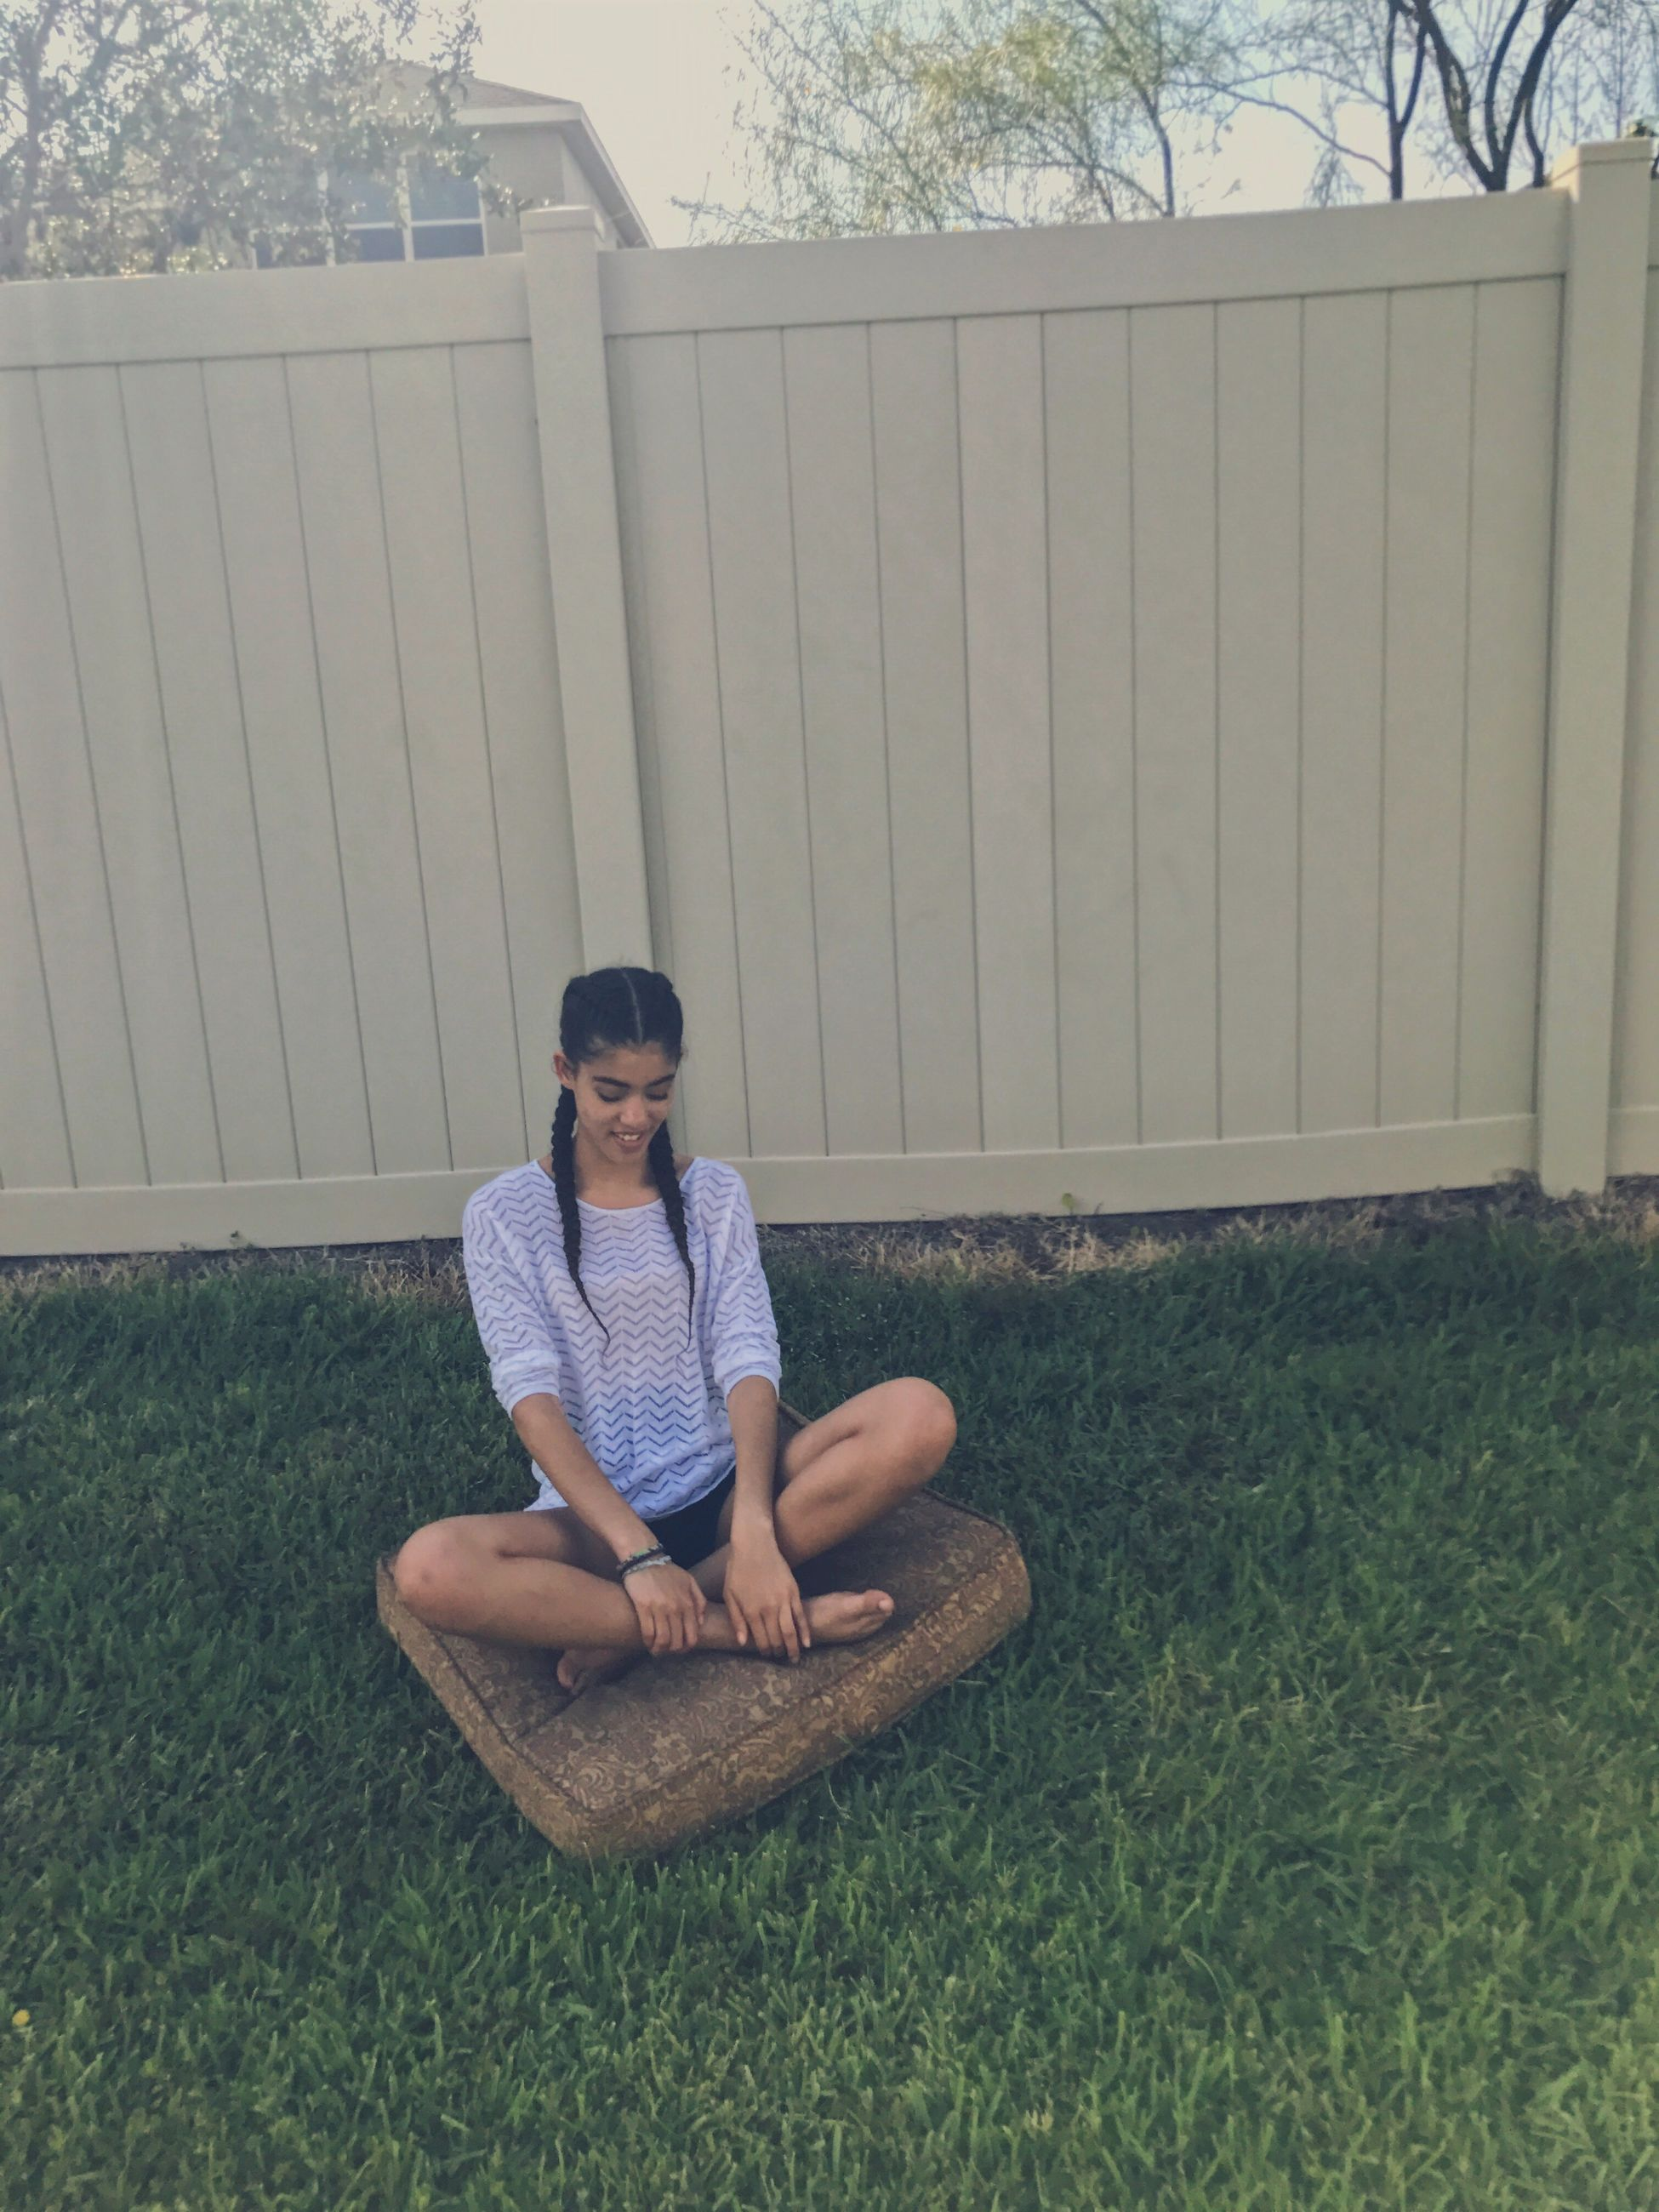 sitting, full length, front view, casual clothing, grass, smiling, outdoors, day, one person, young adult, lifestyles, real people